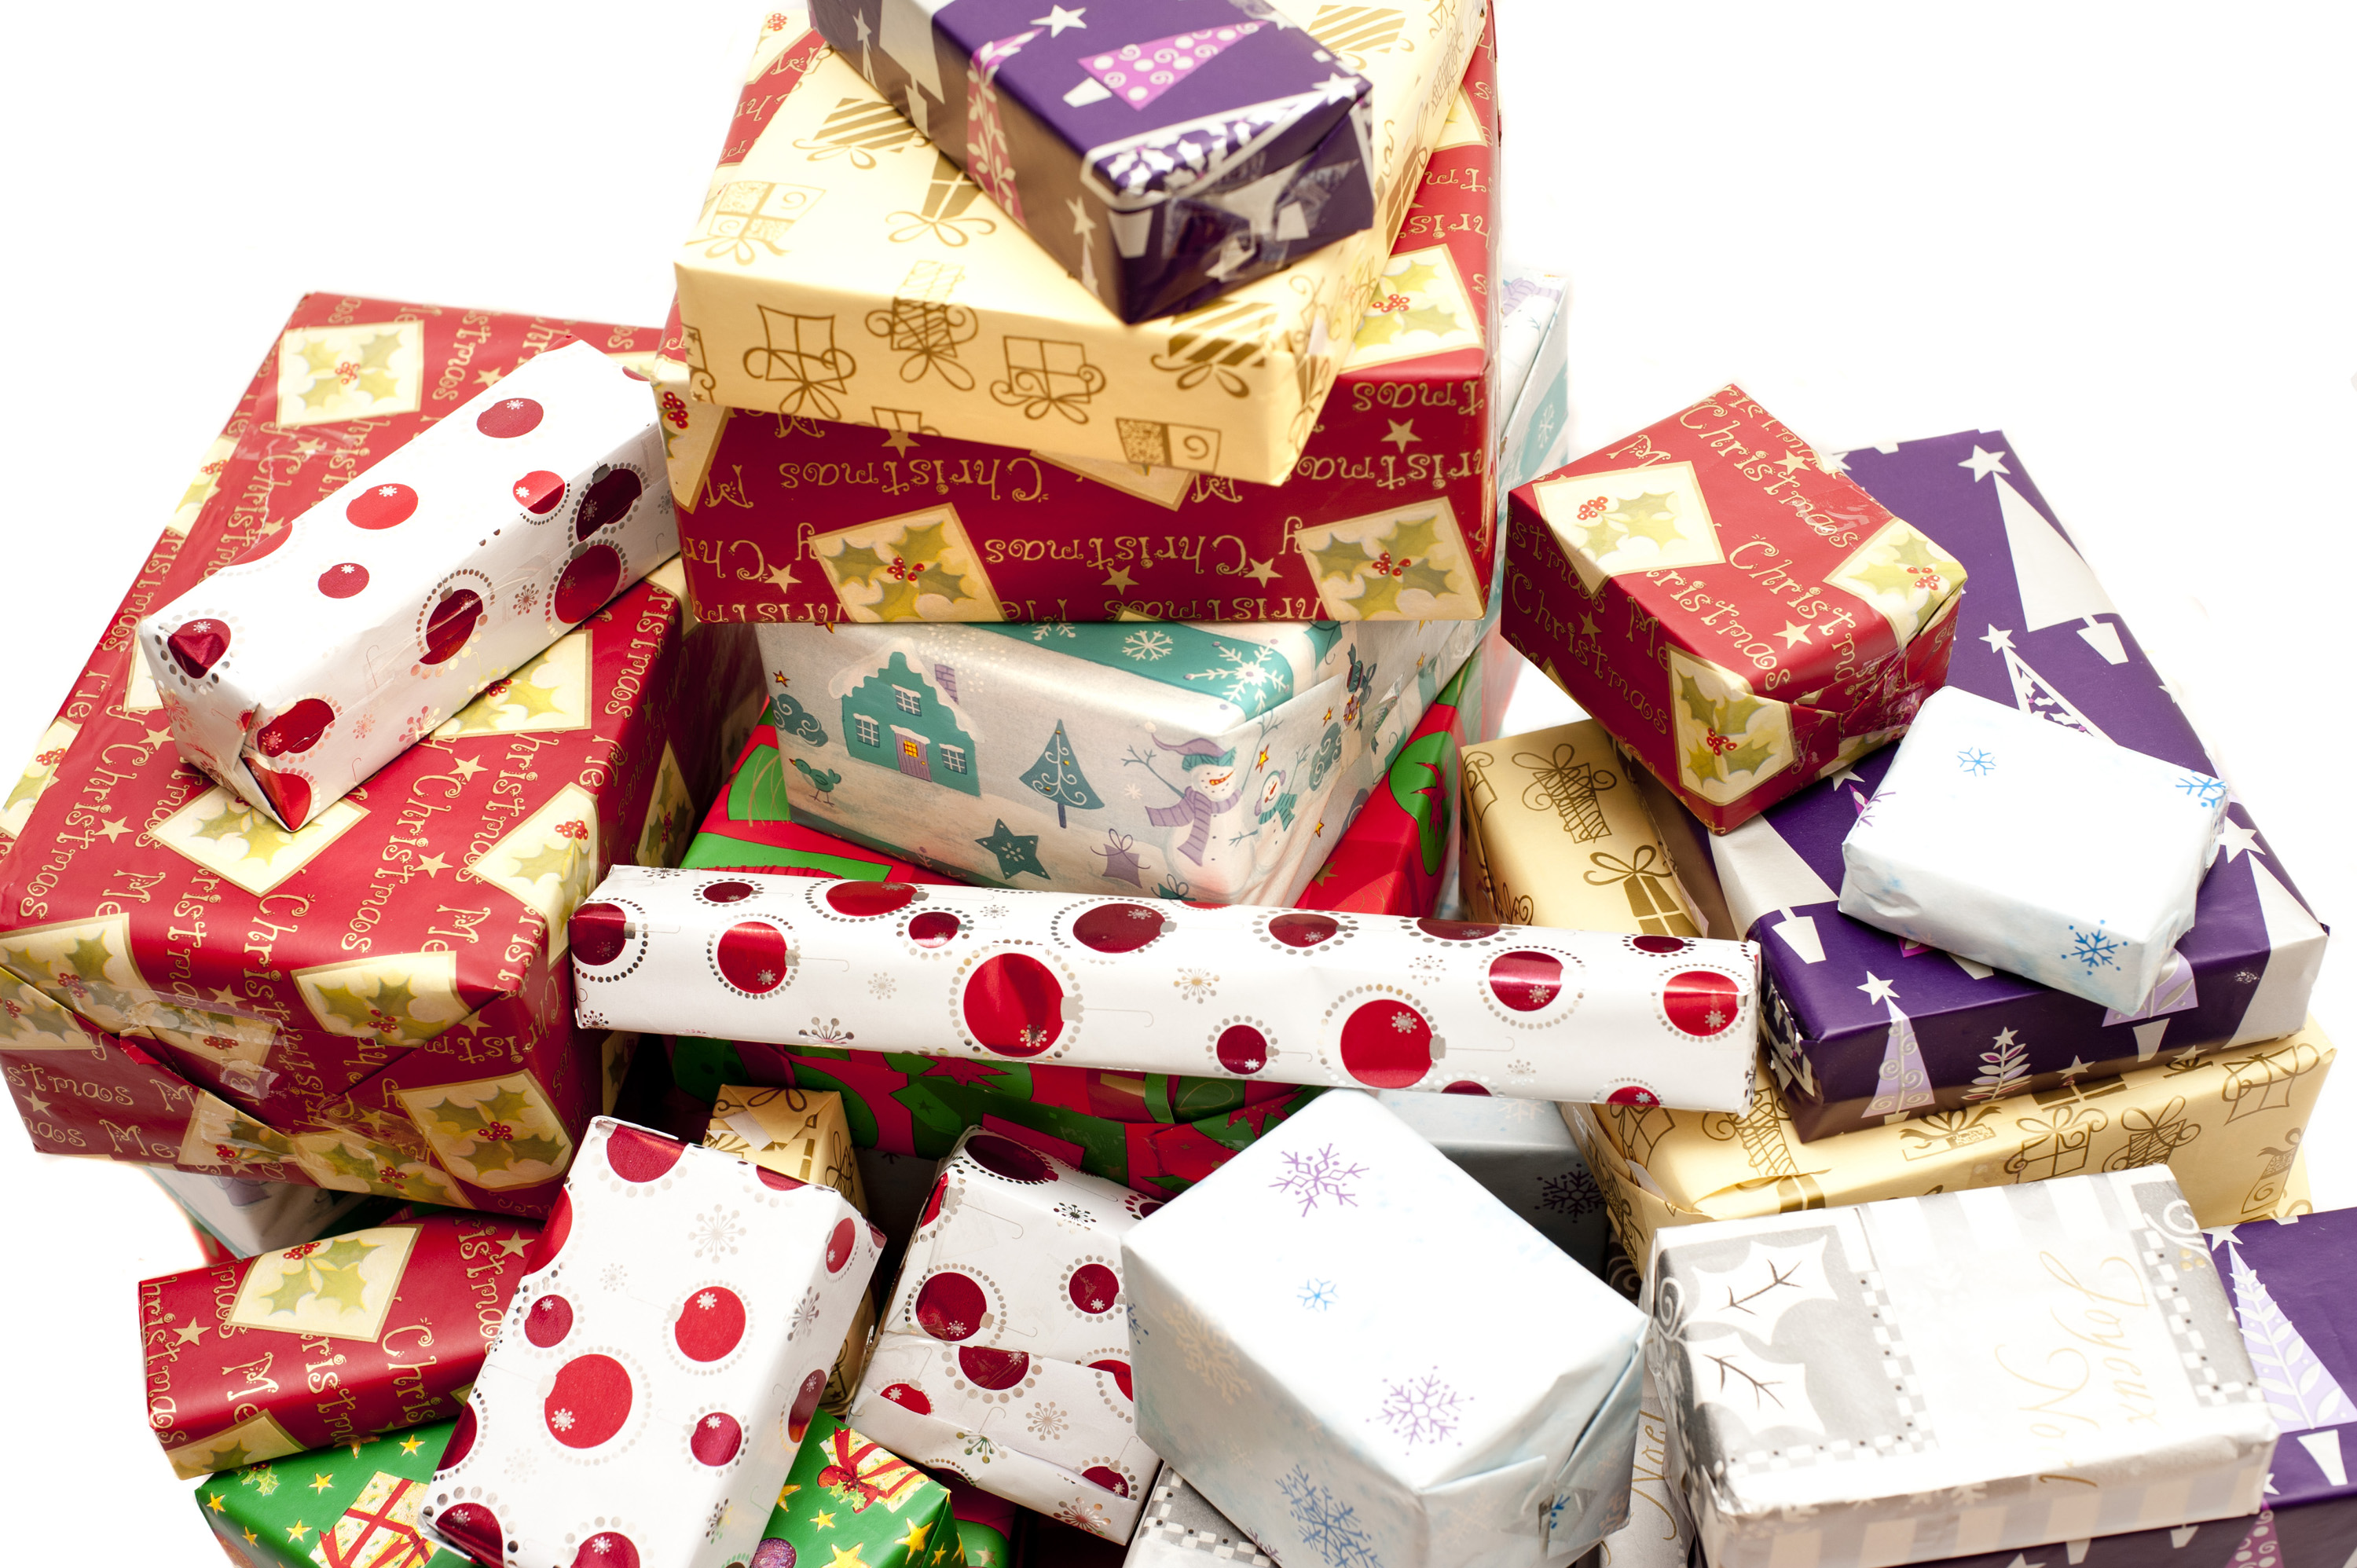 Large pile of multicolored Christmas gifts in decorative seasonal wrapping paper in a close up background view over white